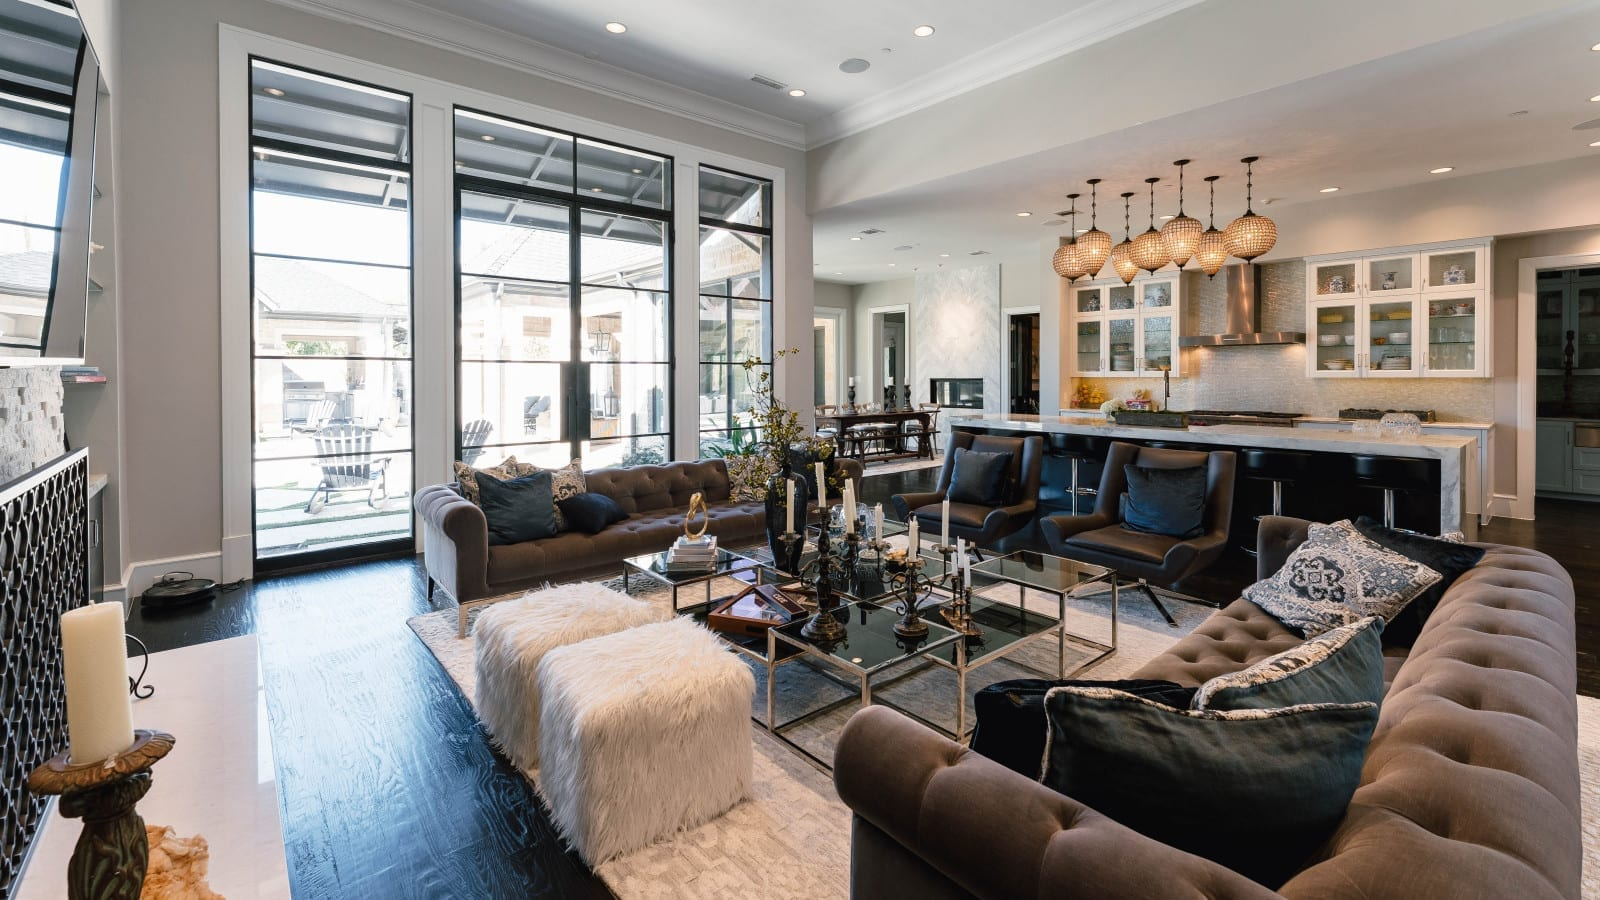 transitional modern style home designed by home builders in Dallas Texas 17 - Millennial Design + Build